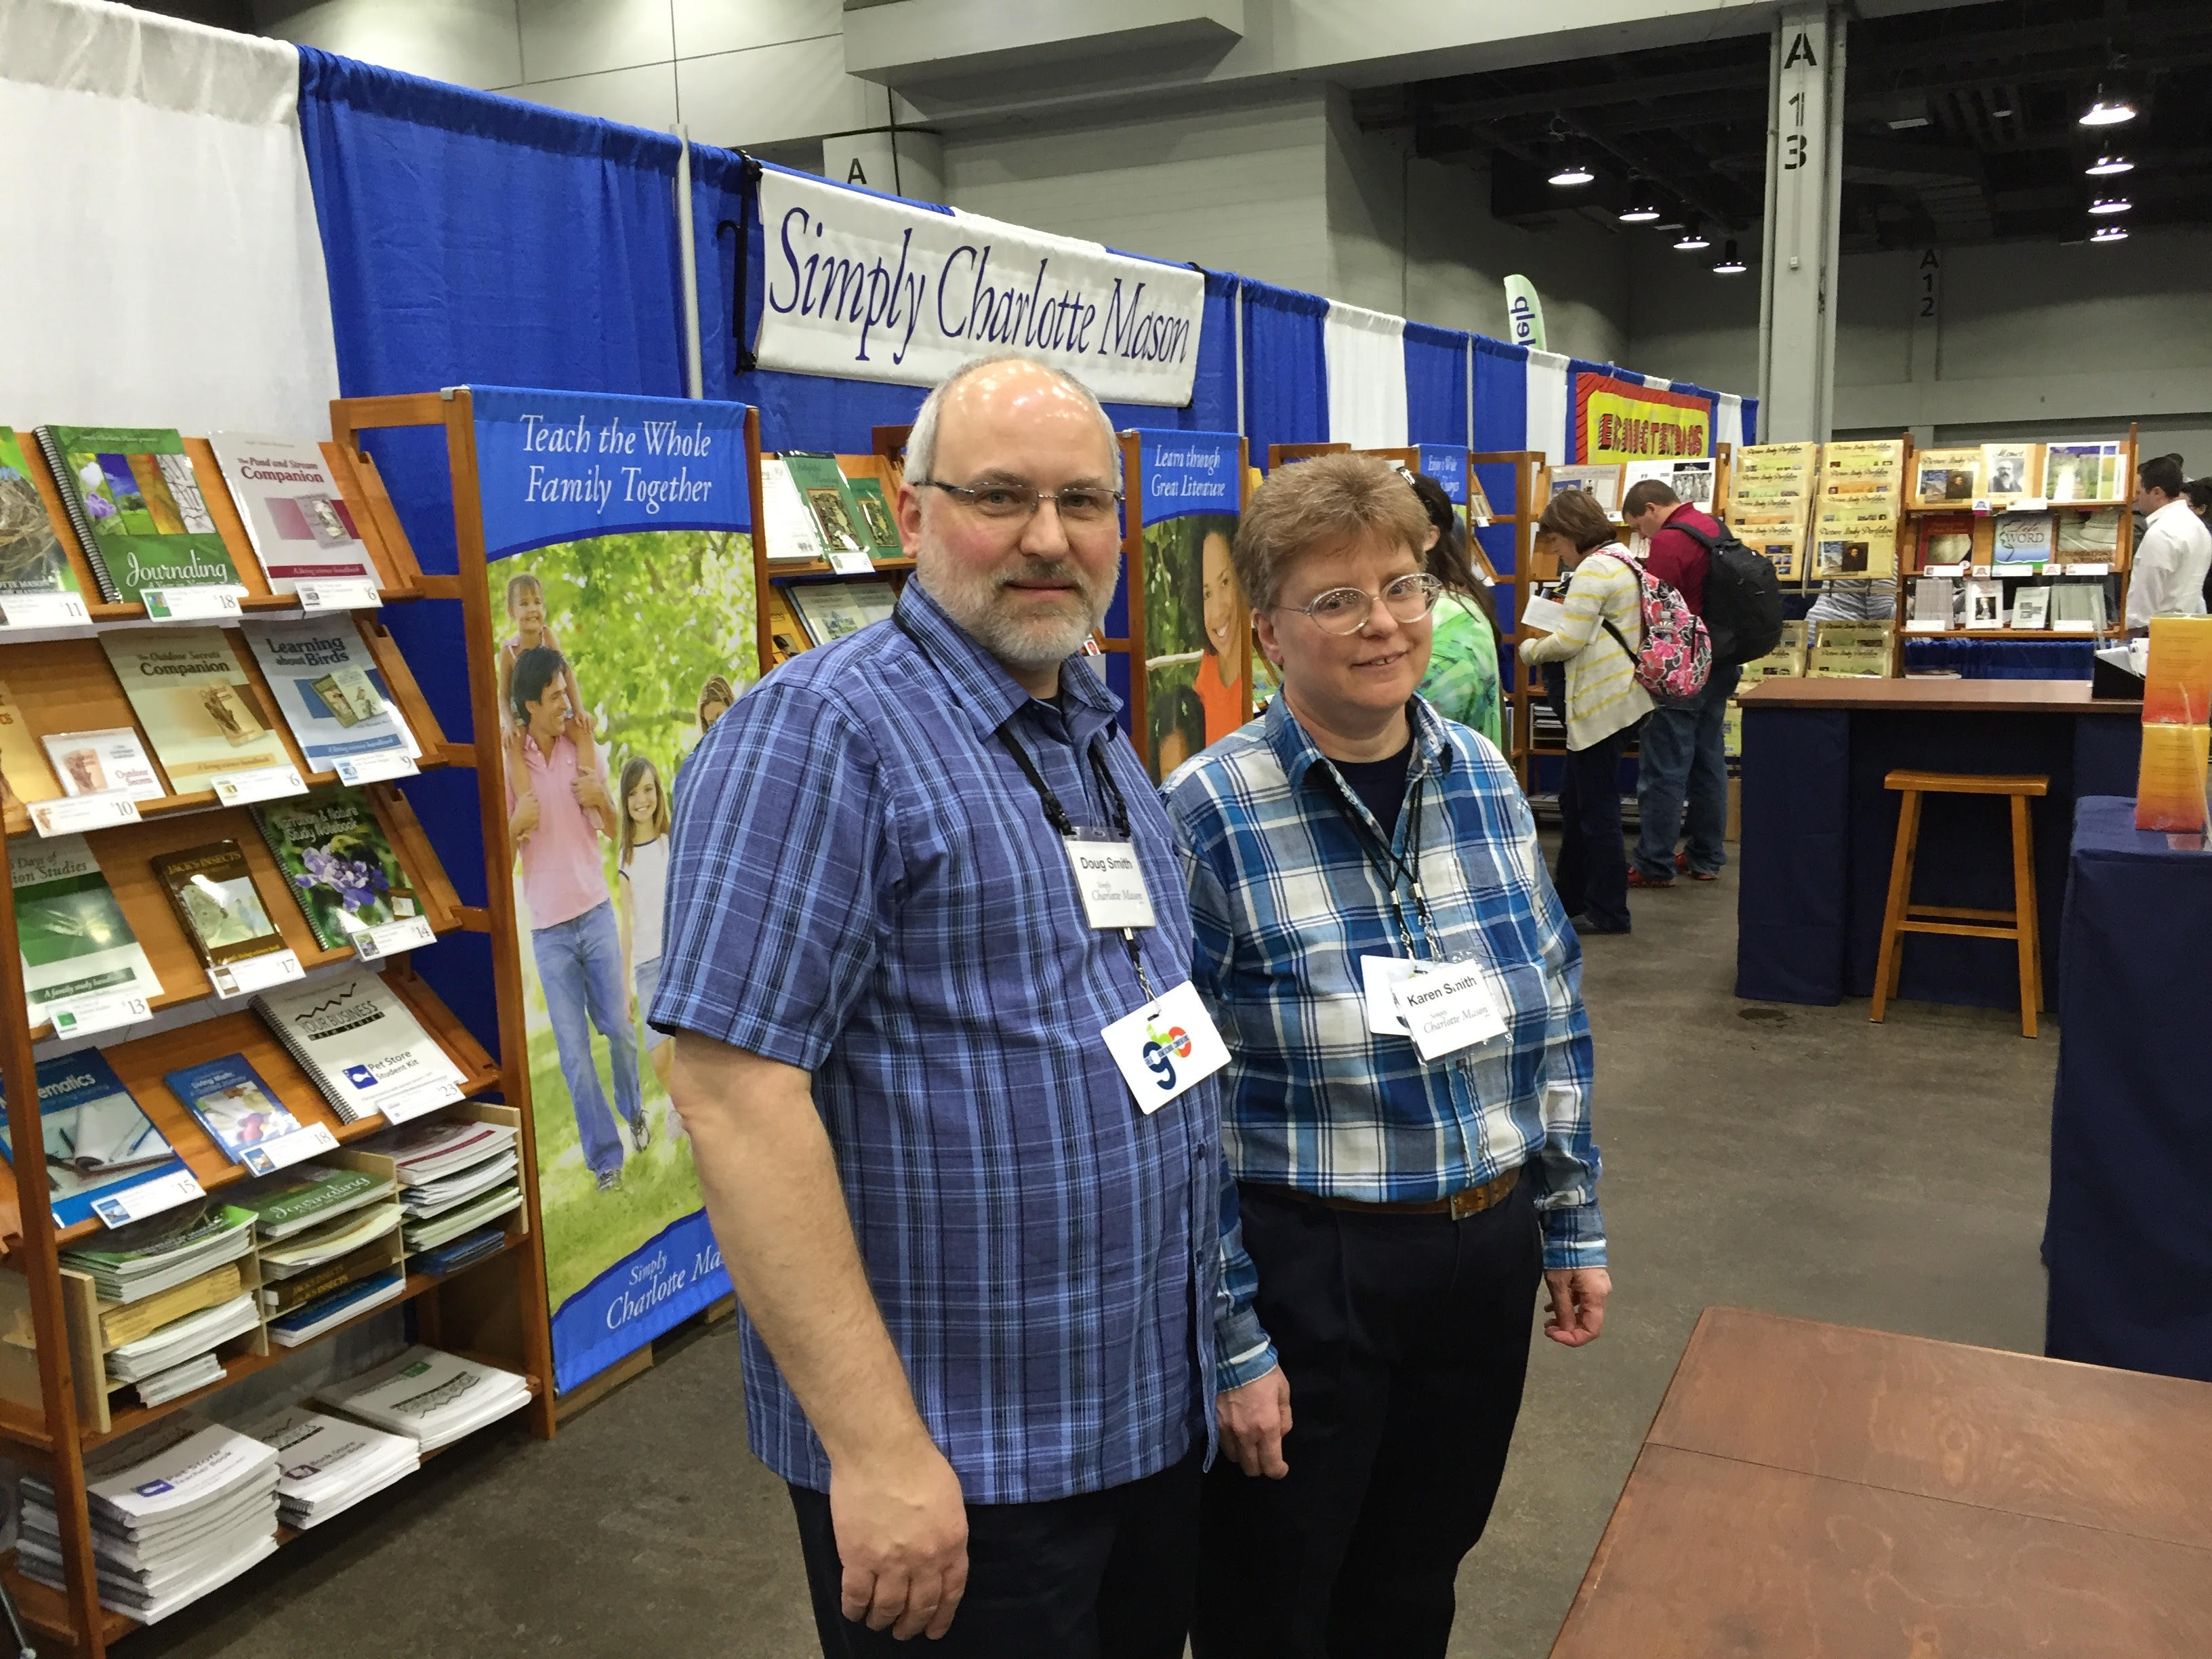 A photo of Doug and his wife, Karen, in their booth at a homeschool convention.